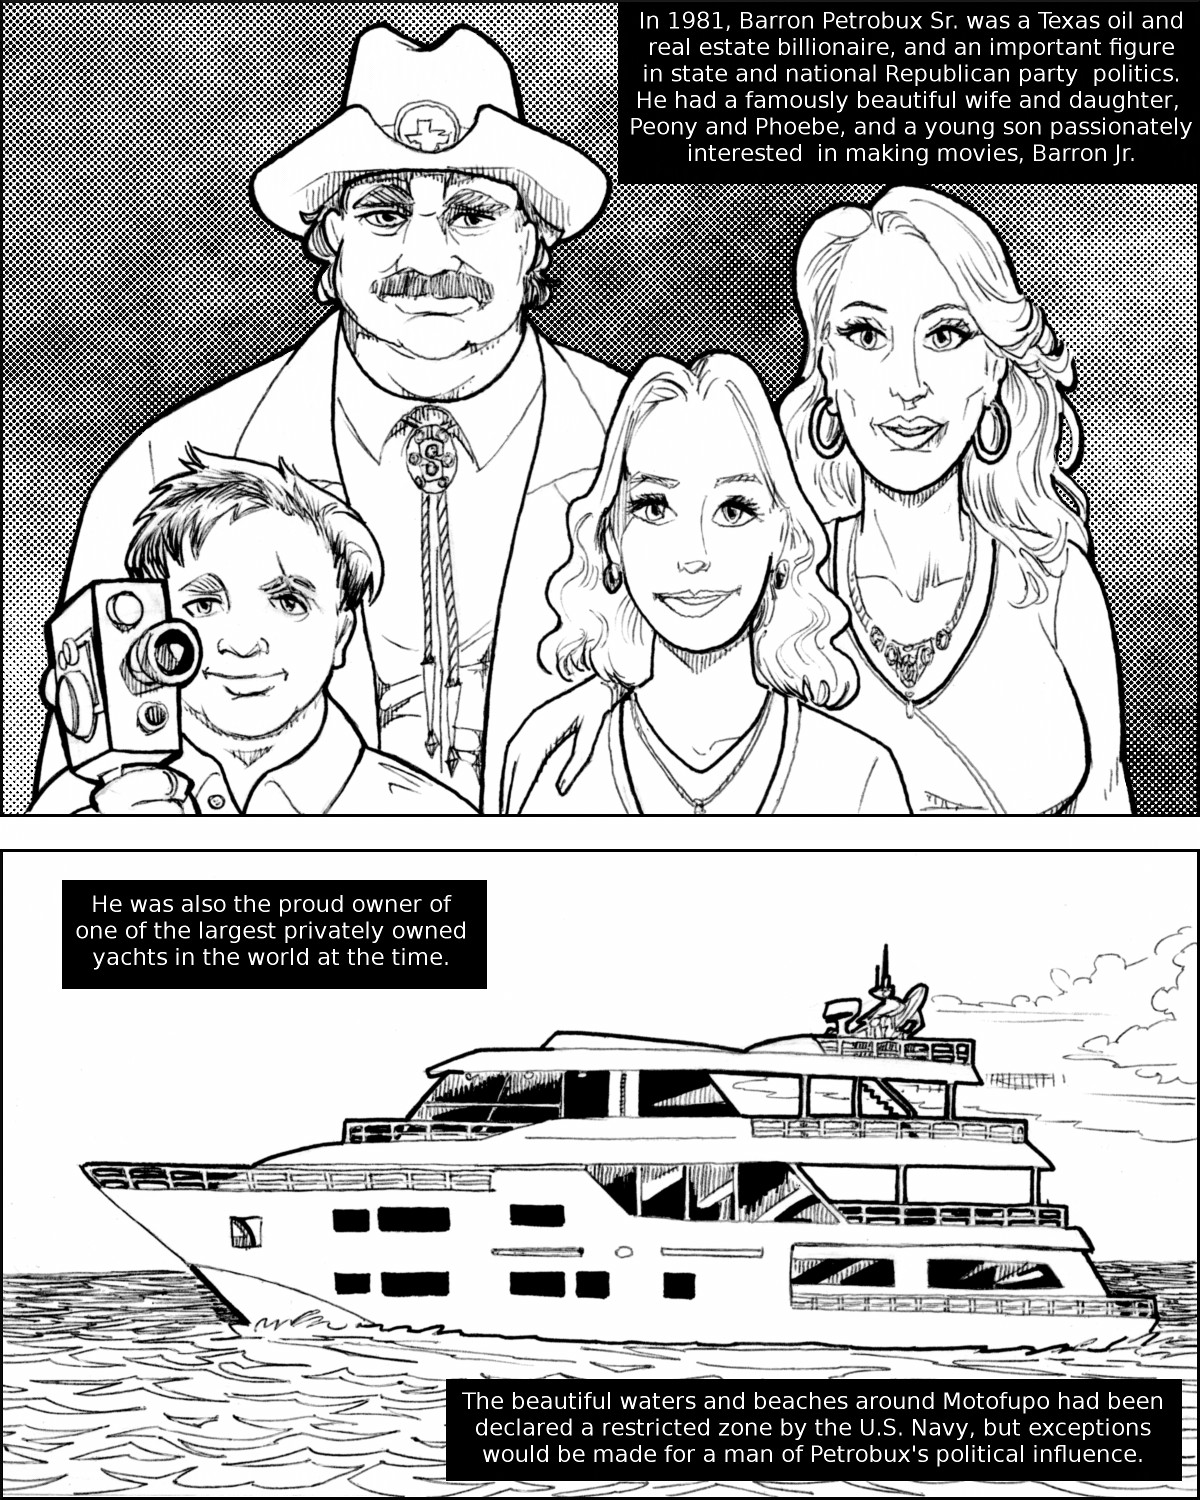 Barron Petrobux and his charming family go on a cruise in the South Pacific